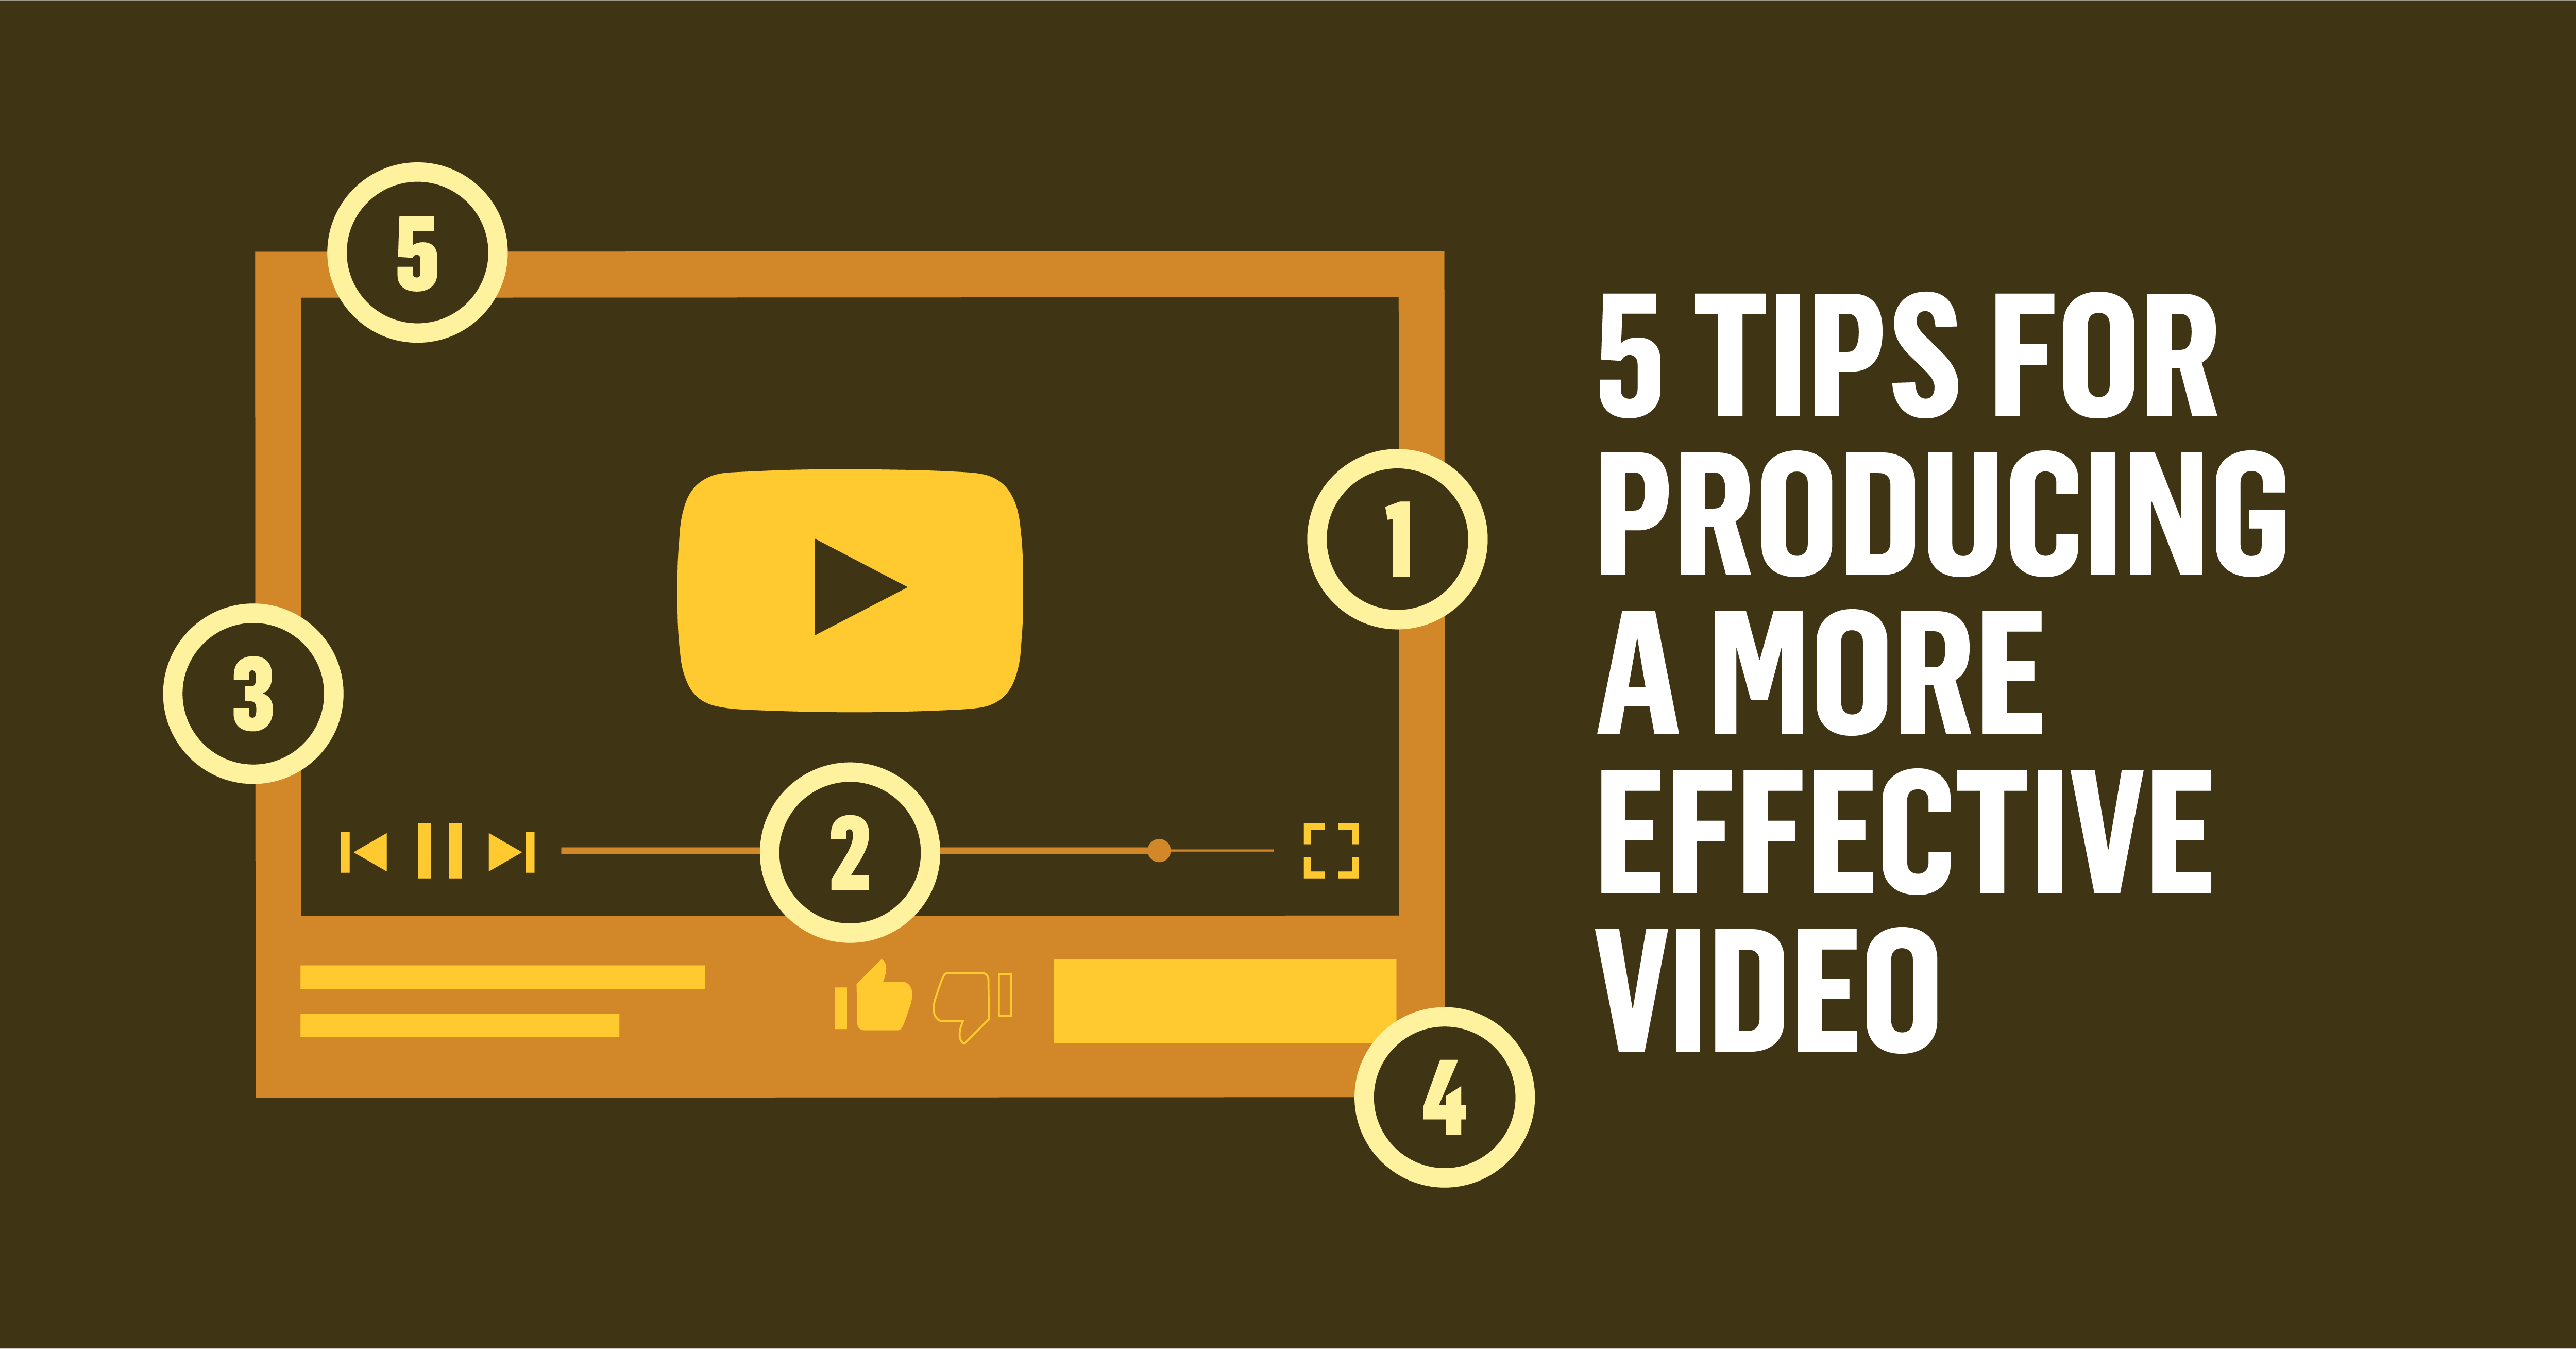 5 Tips for Producing a More Effective Video